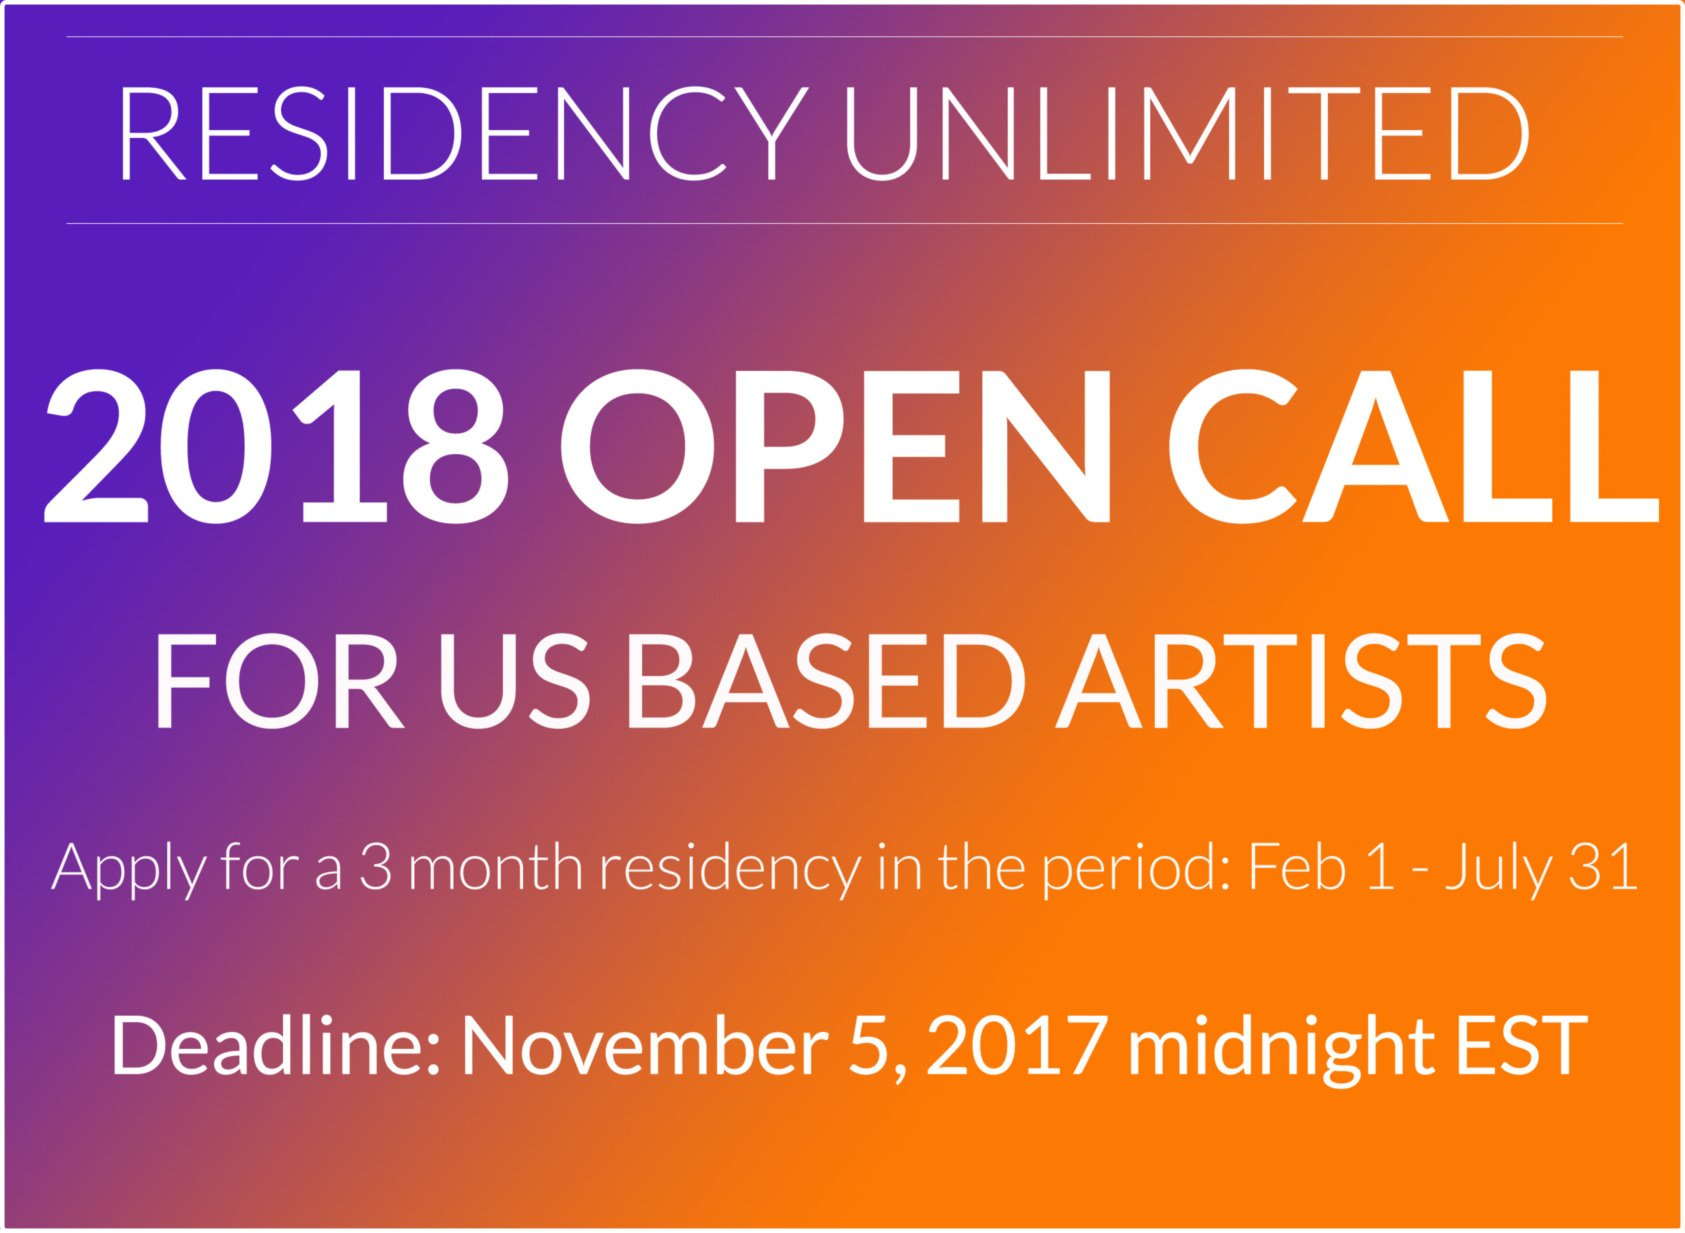 Residency in the 2018-2019 year 42